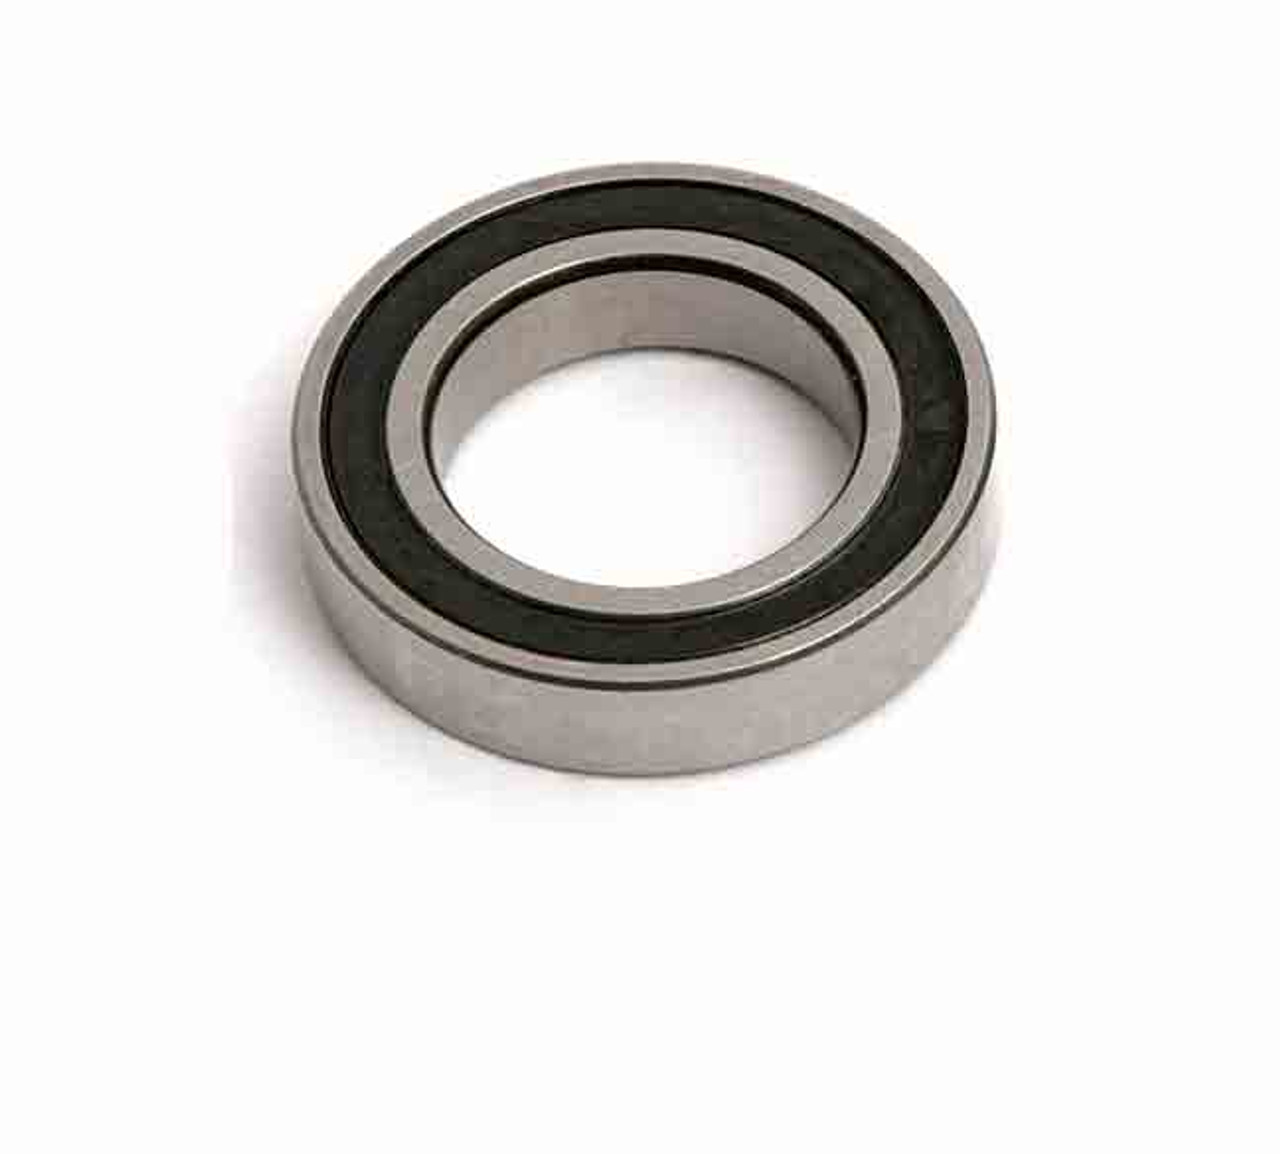 10 PCS 6901-2RS Hybrid Ceramic Si3N4 Rubber Sealed Bearing Bearings 12x24x6 mm